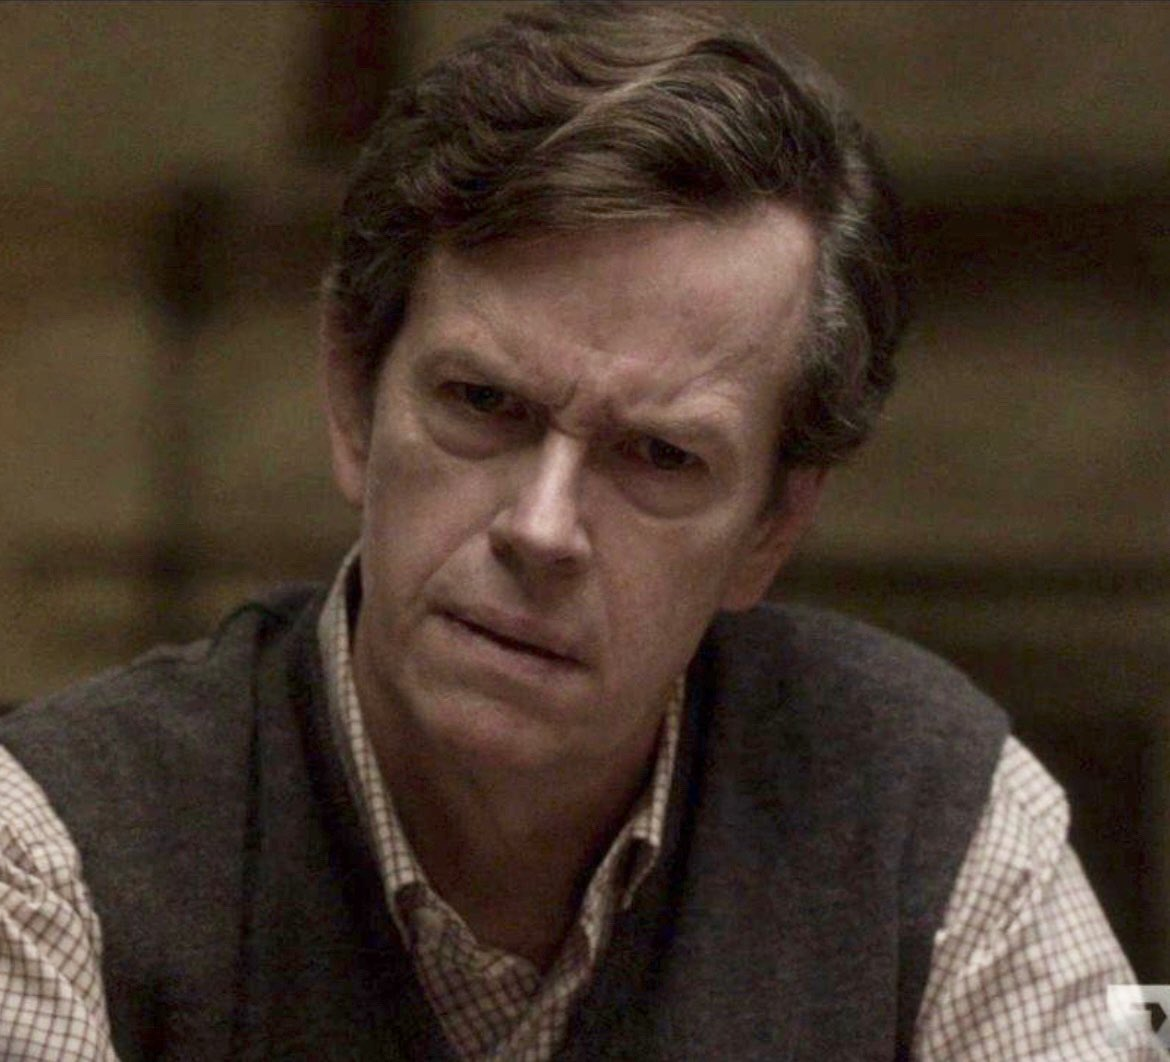 """@jason_blum Auditions to play """"Cool guy version of Dylan Baker""""? https://t.co/R9bYWZFoAB"""